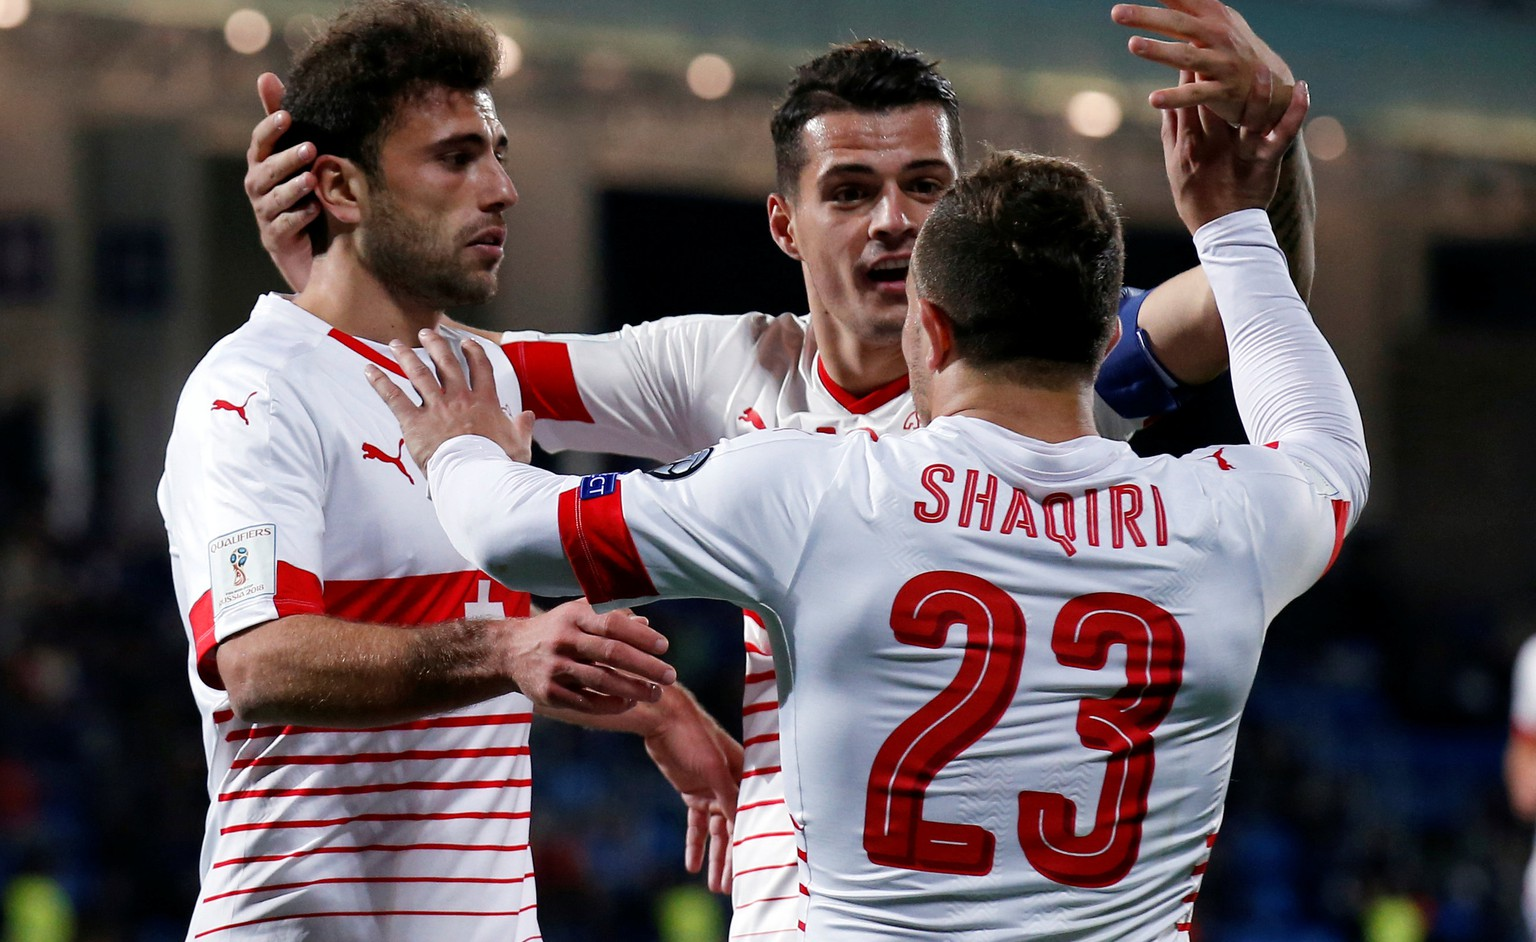 Football Soccer - Andorra v Switzerland - World Cup 2018 Qualifier - Estadi Nacional, Andorra la Vella, Andorra - 10/10/16.Switzerland's Xherdan Shaqiri, Admir Mehmedi and Granit Xhaka celebrate a goal. REUTERS/Albert Gea